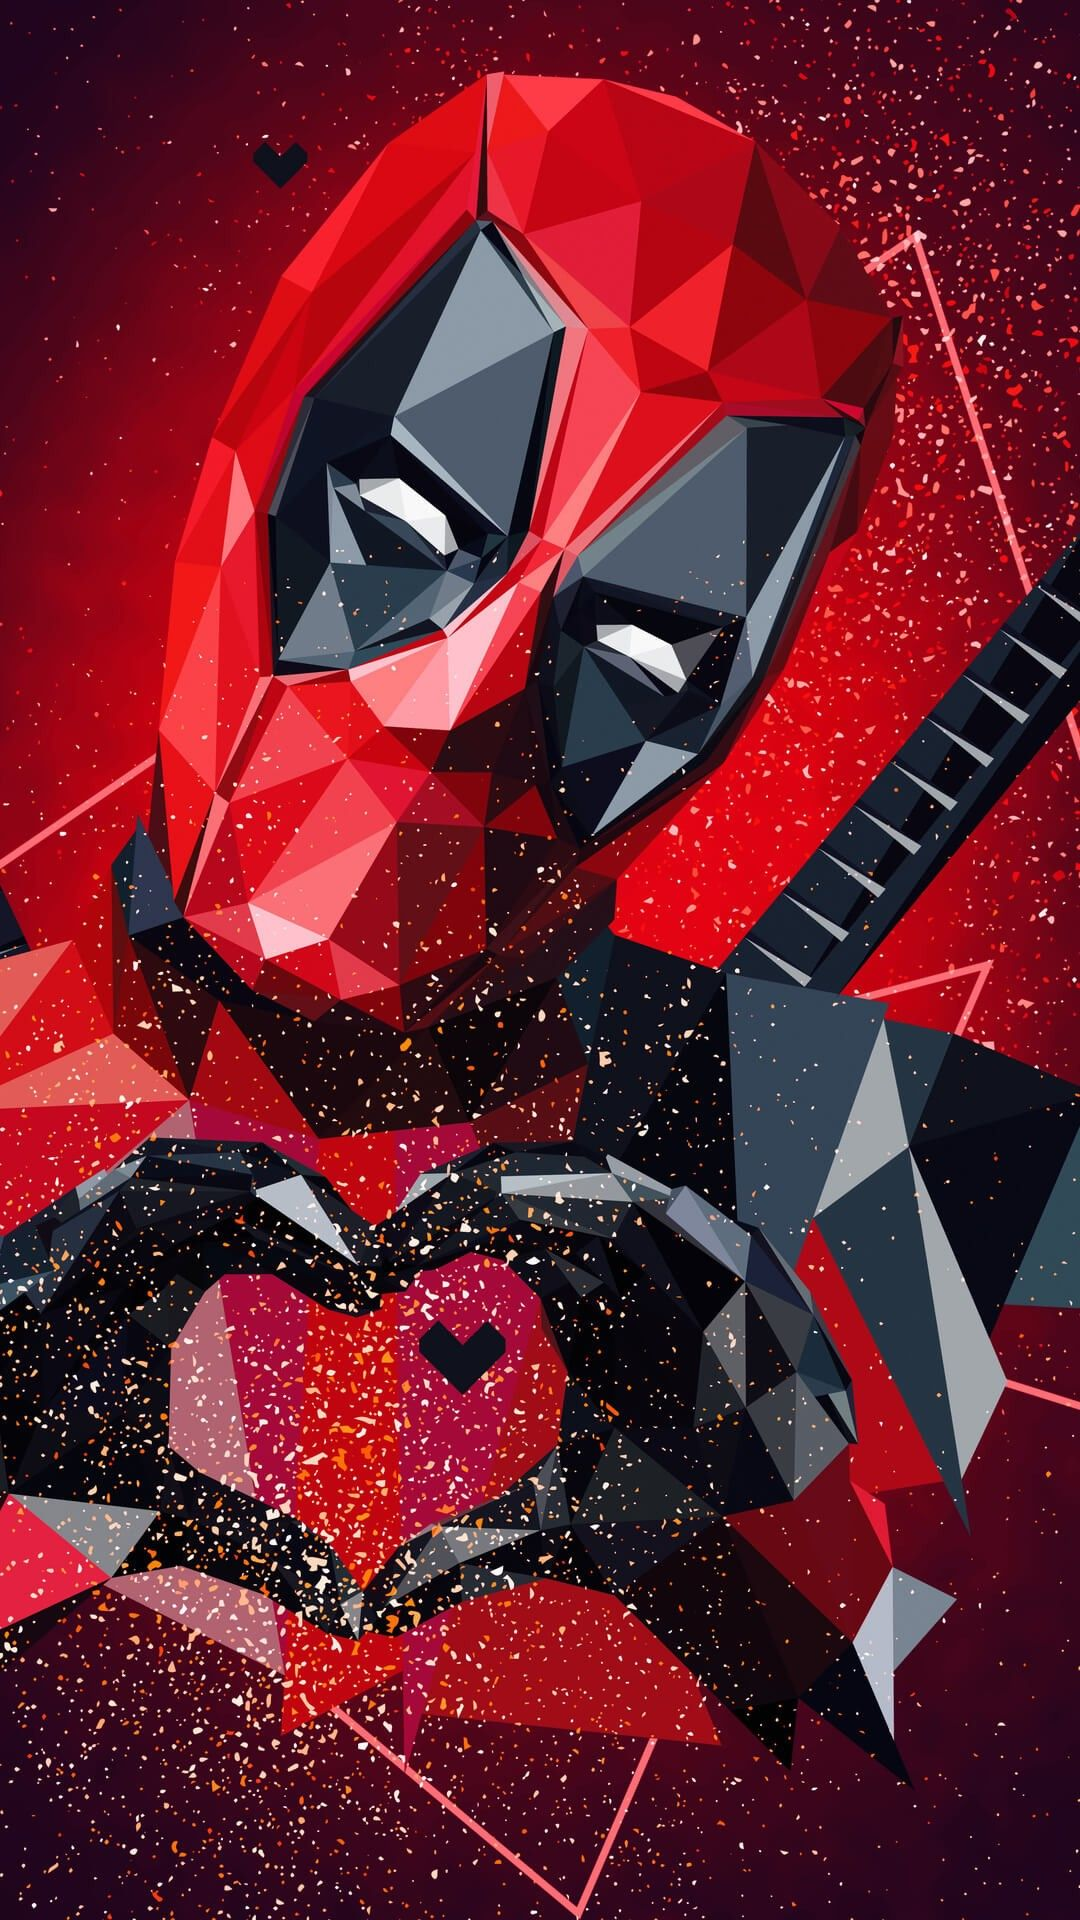 Pin By Colorfullhdwallpapers On Deadpool Live Wallpaper Superhero Wallpaper Iphone Deadpool Live Wallpaper Deadpool Wallpaper